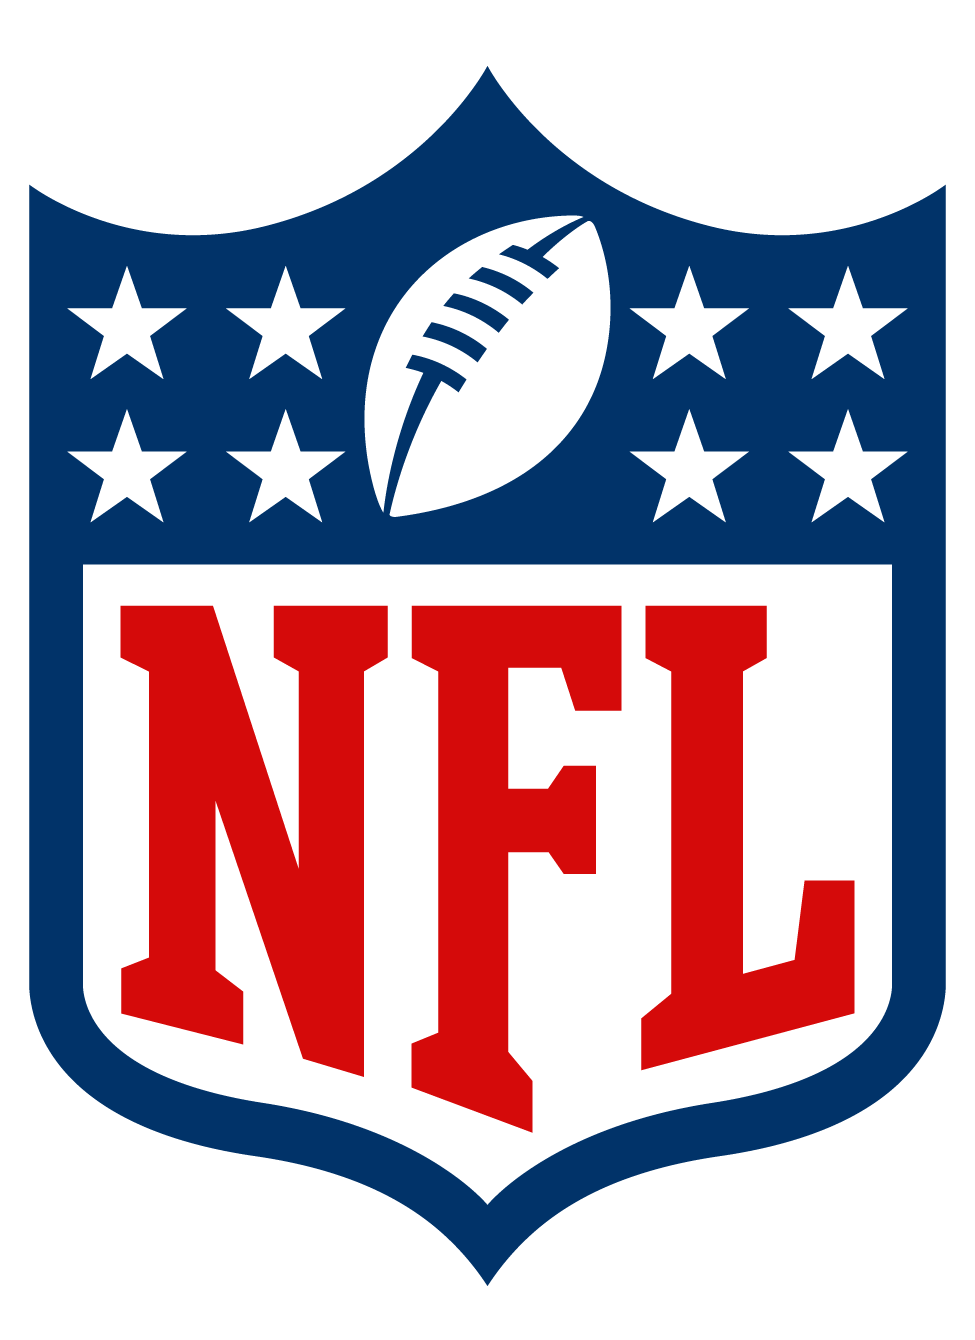 Nfl channel logo png. Yahoo pays to stream